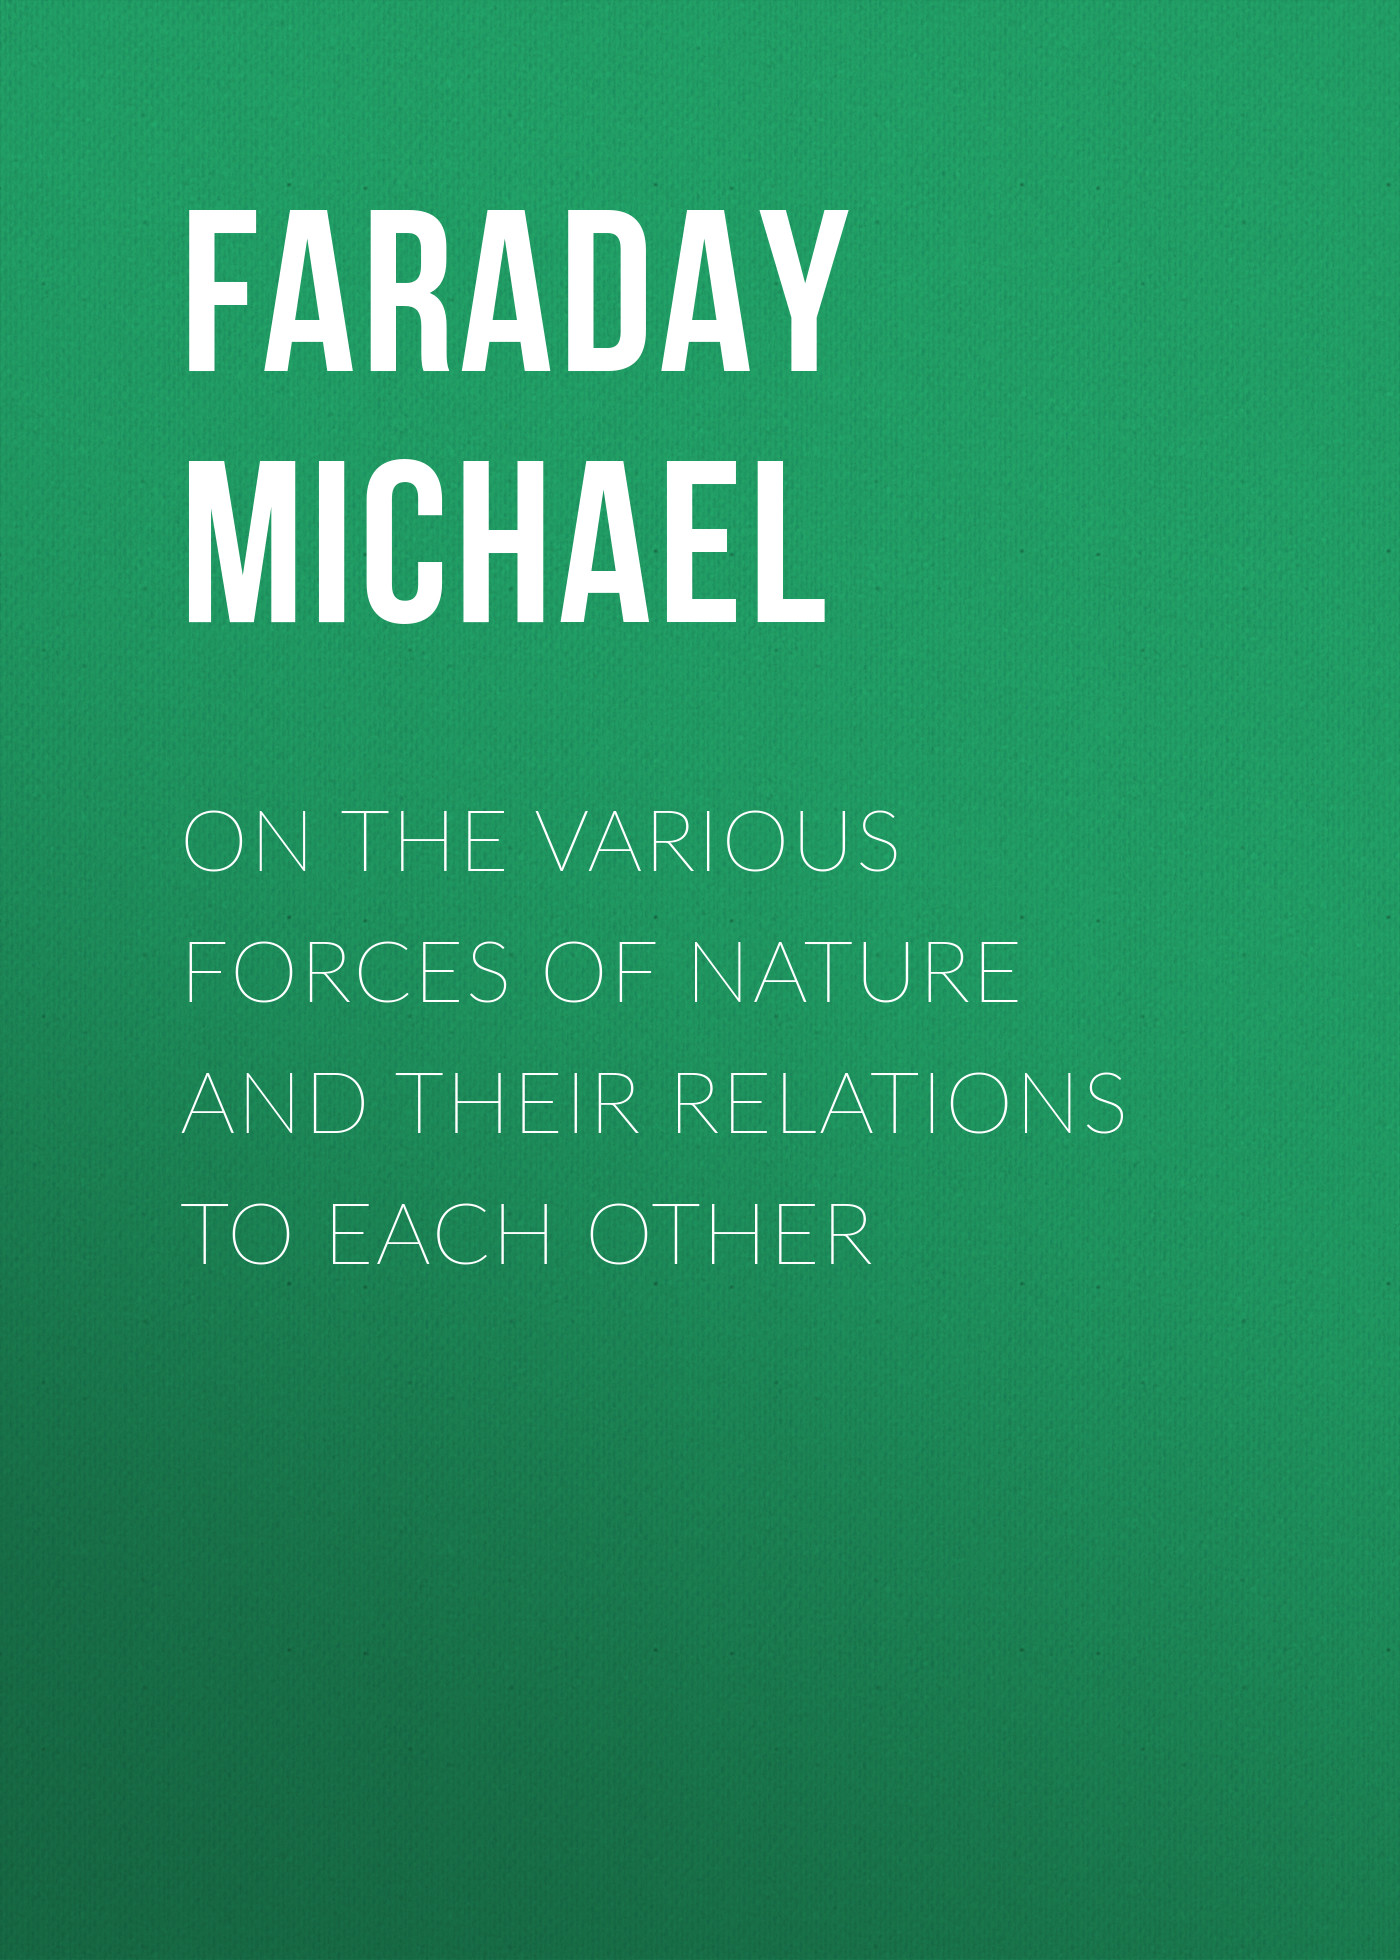 Faraday Michael On the various forces of nature and their relations to each other widesea portable camp shove oil gas multi fuel stove camping burners outdoor stove picnic gas stove cooking stove burner